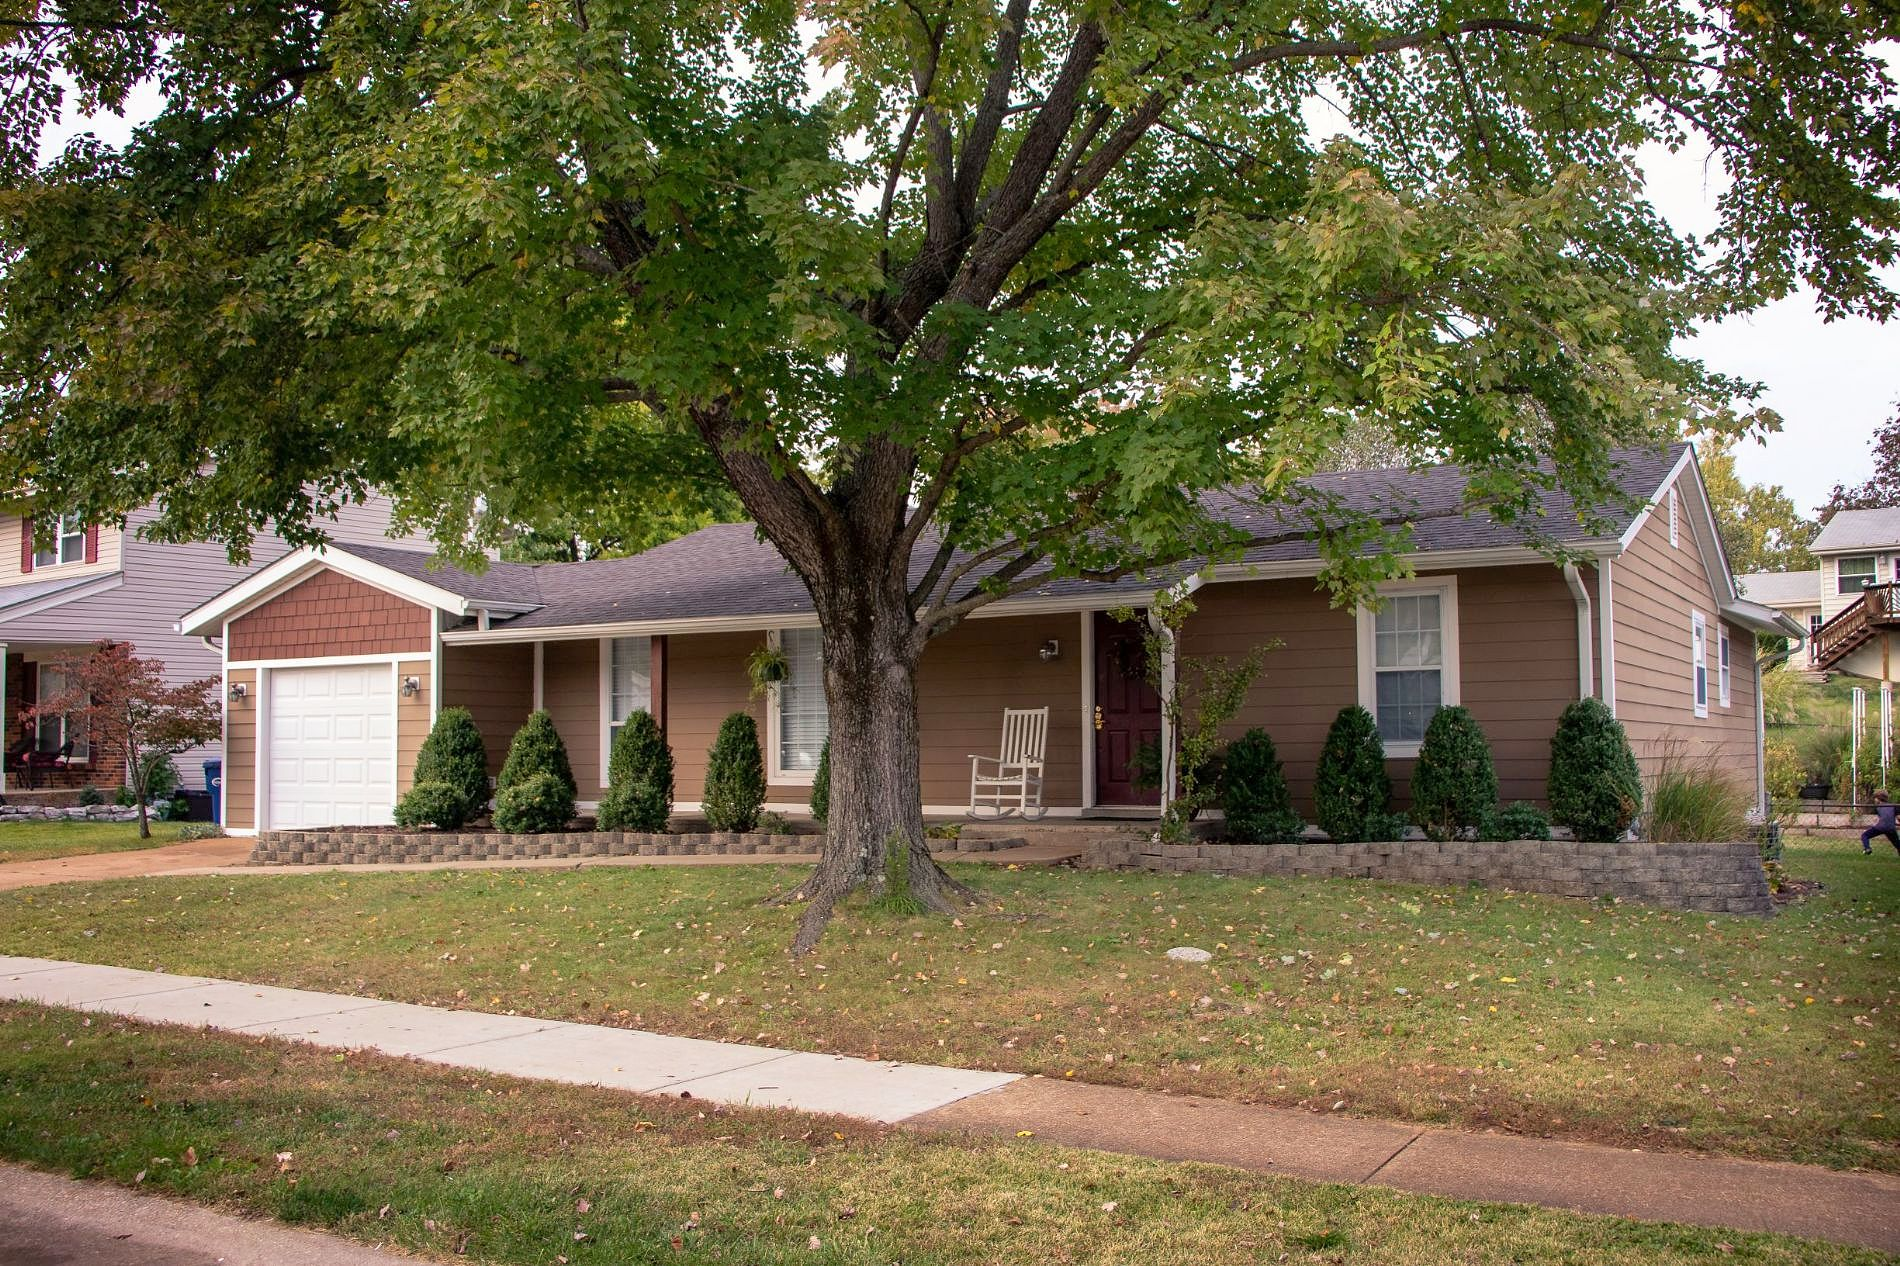 3 Bedrooms / 2 Bathrooms - Est. $1,633.00 / Month* for rent in Fenton, MO